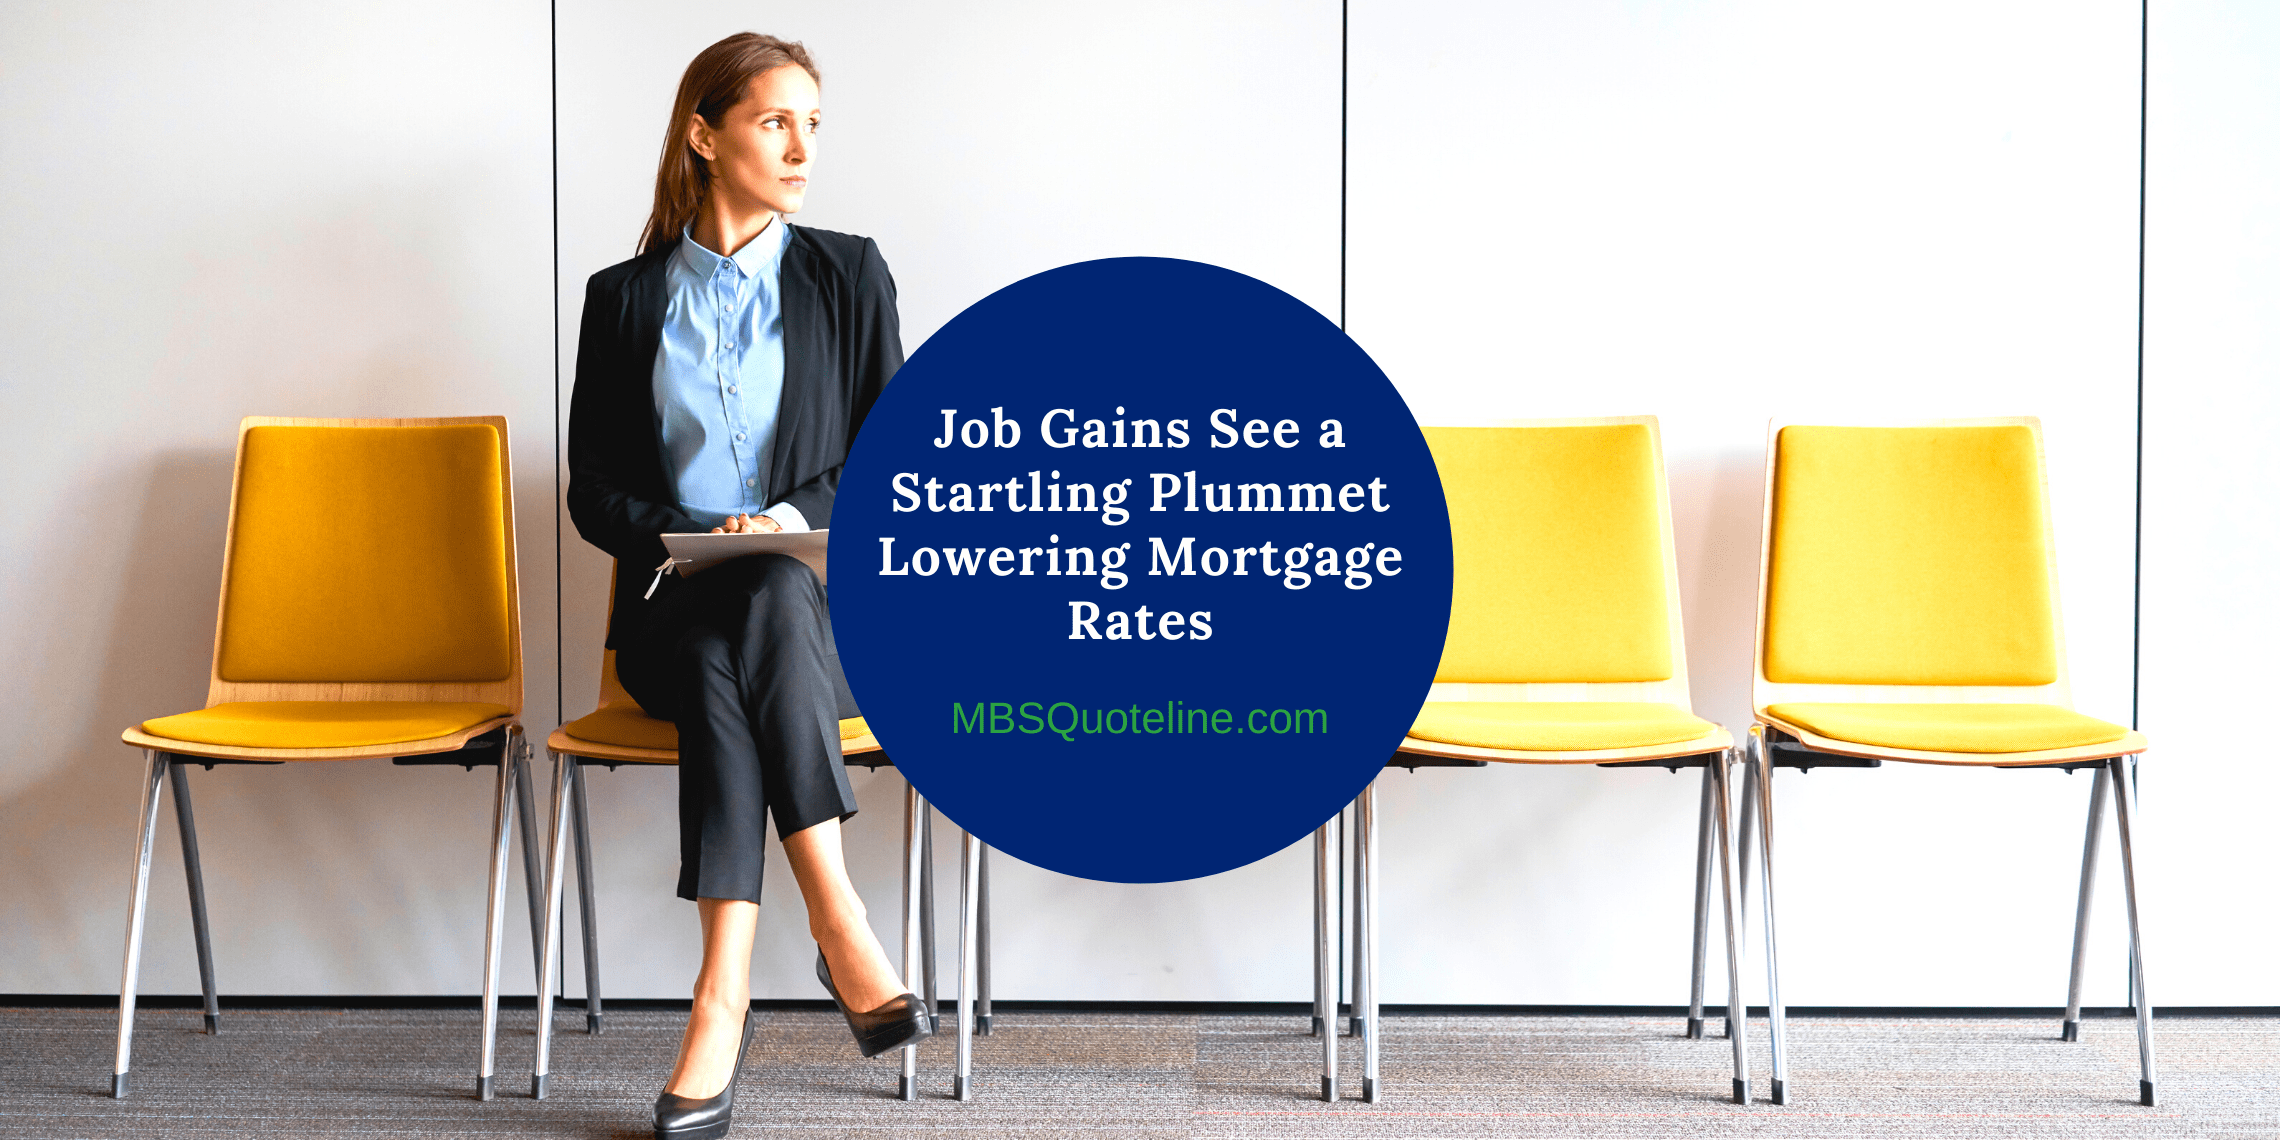 job gains see startling plummet lowering mortgage rates mortgagetime mbsquoteline featured